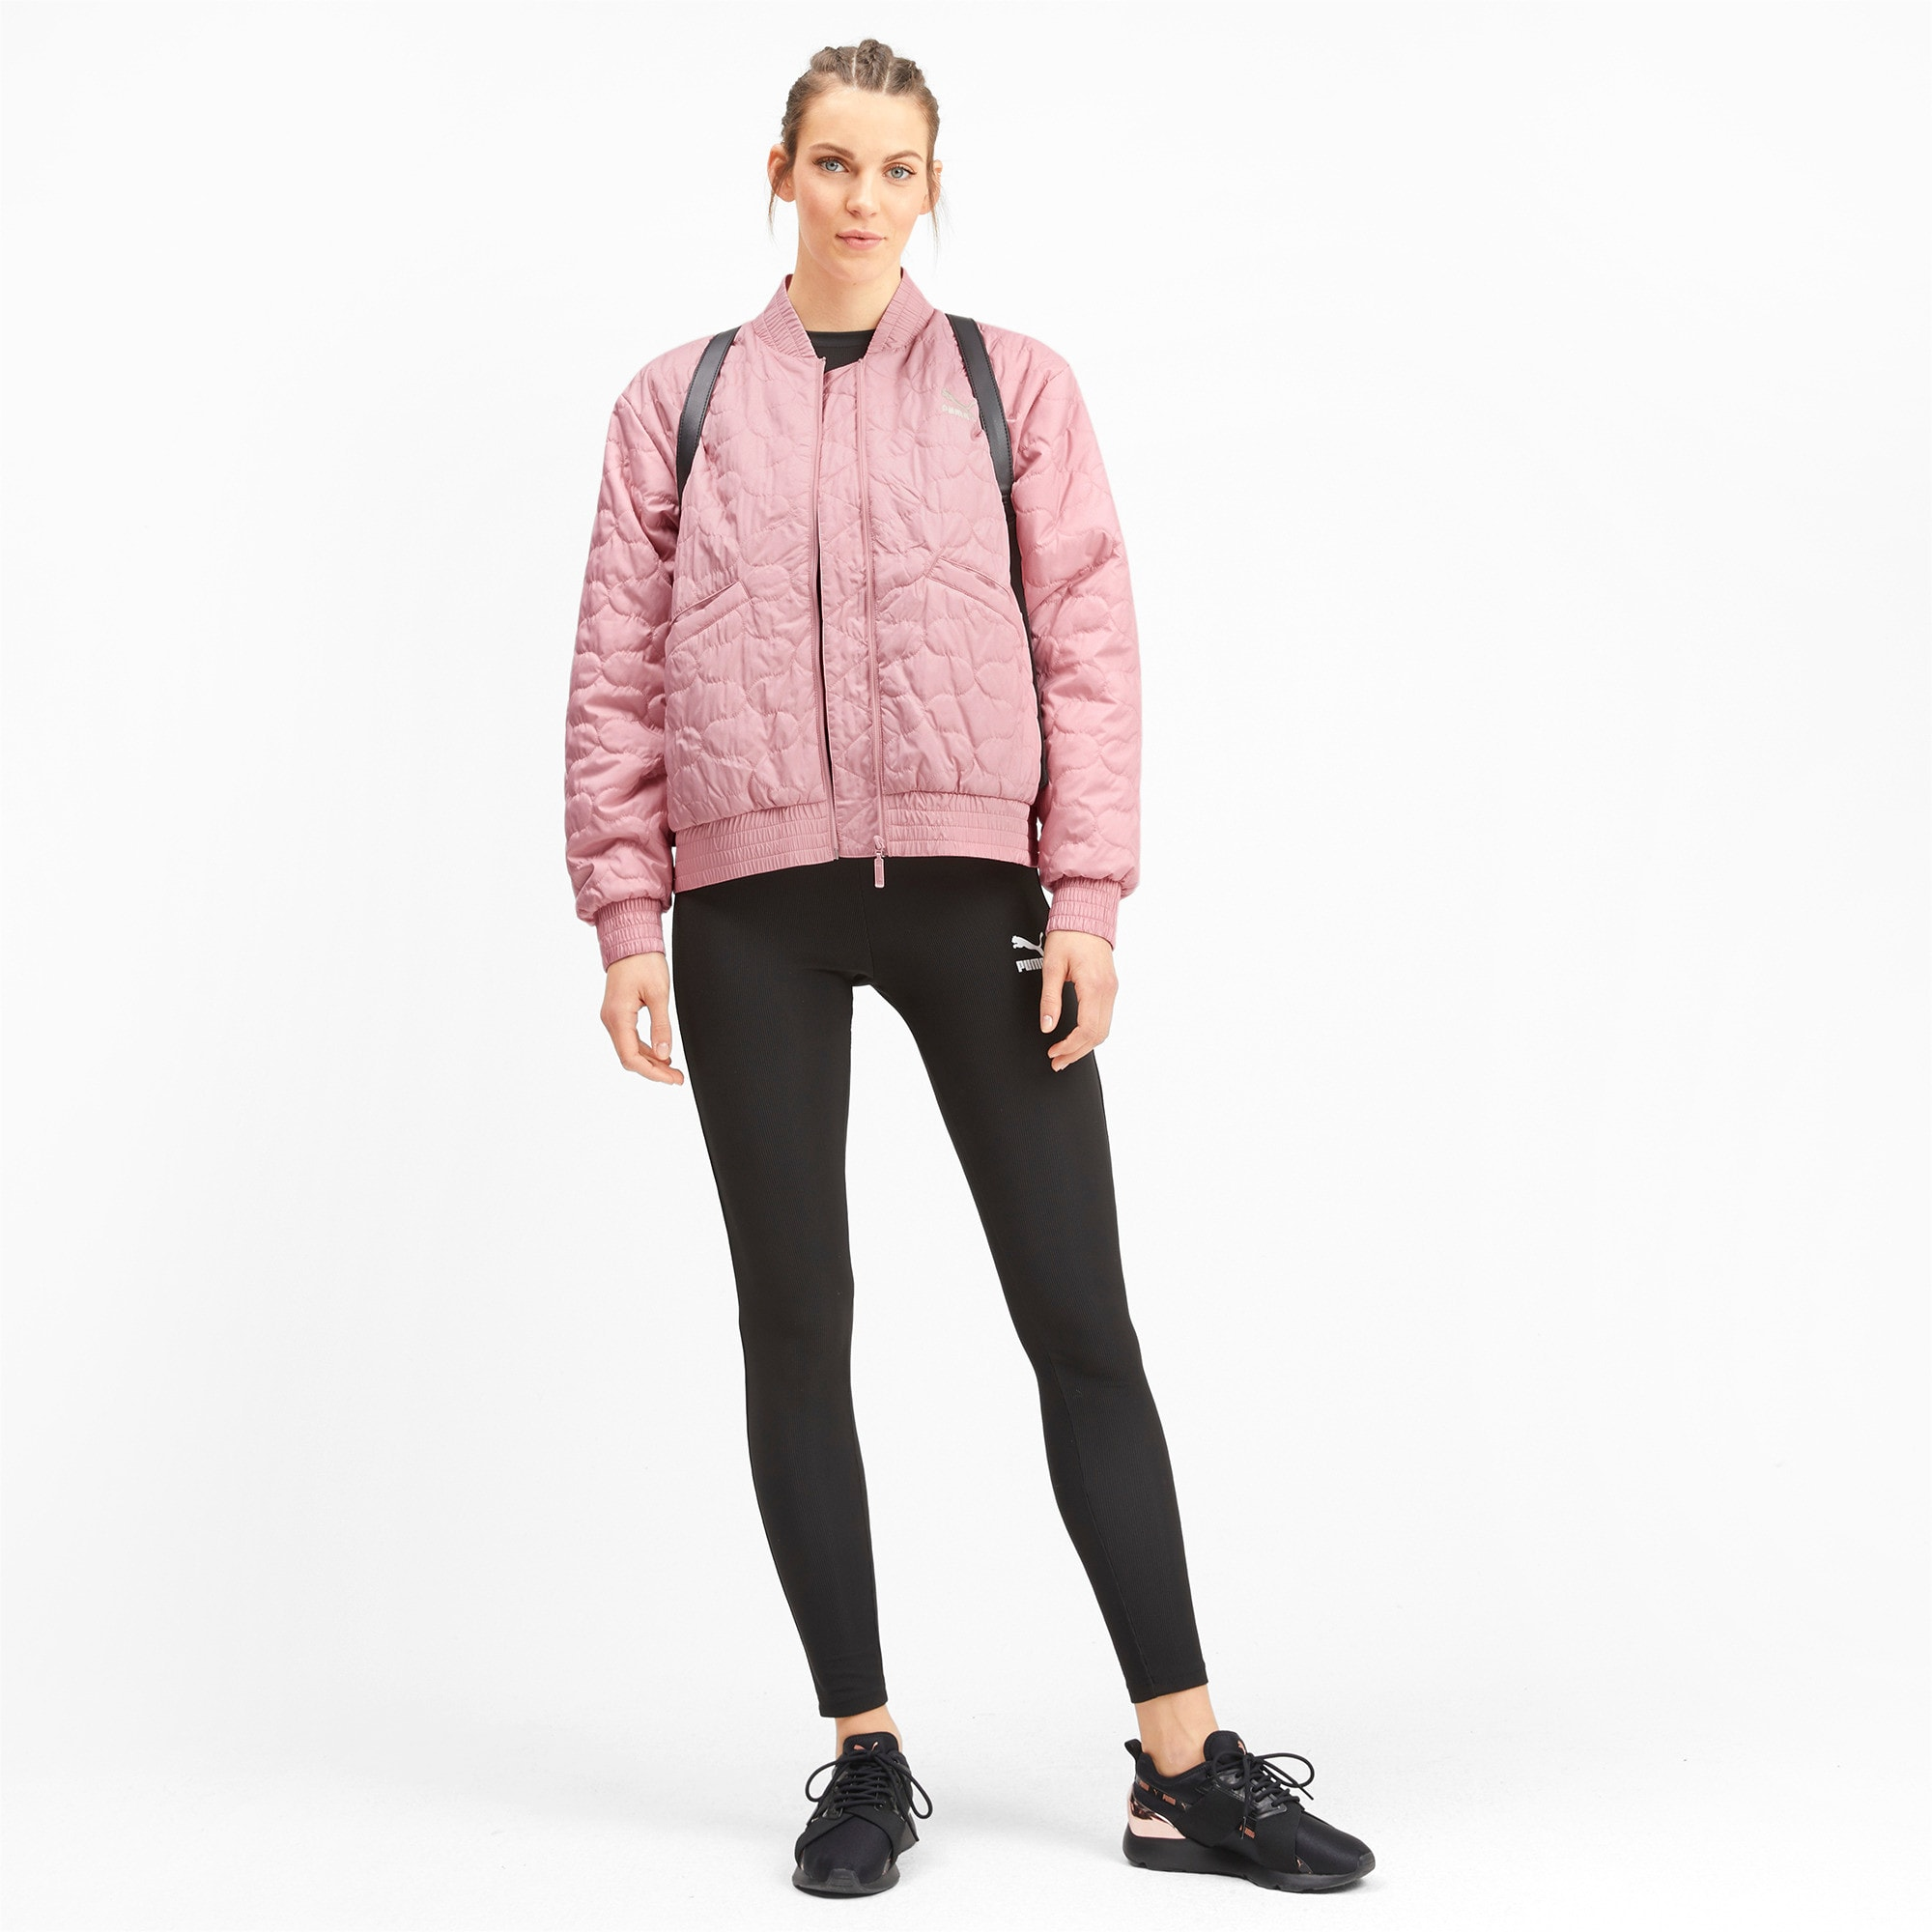 Thumbnail 4 of Woven Women's Bomber Jacket, Bridal Rose, medium